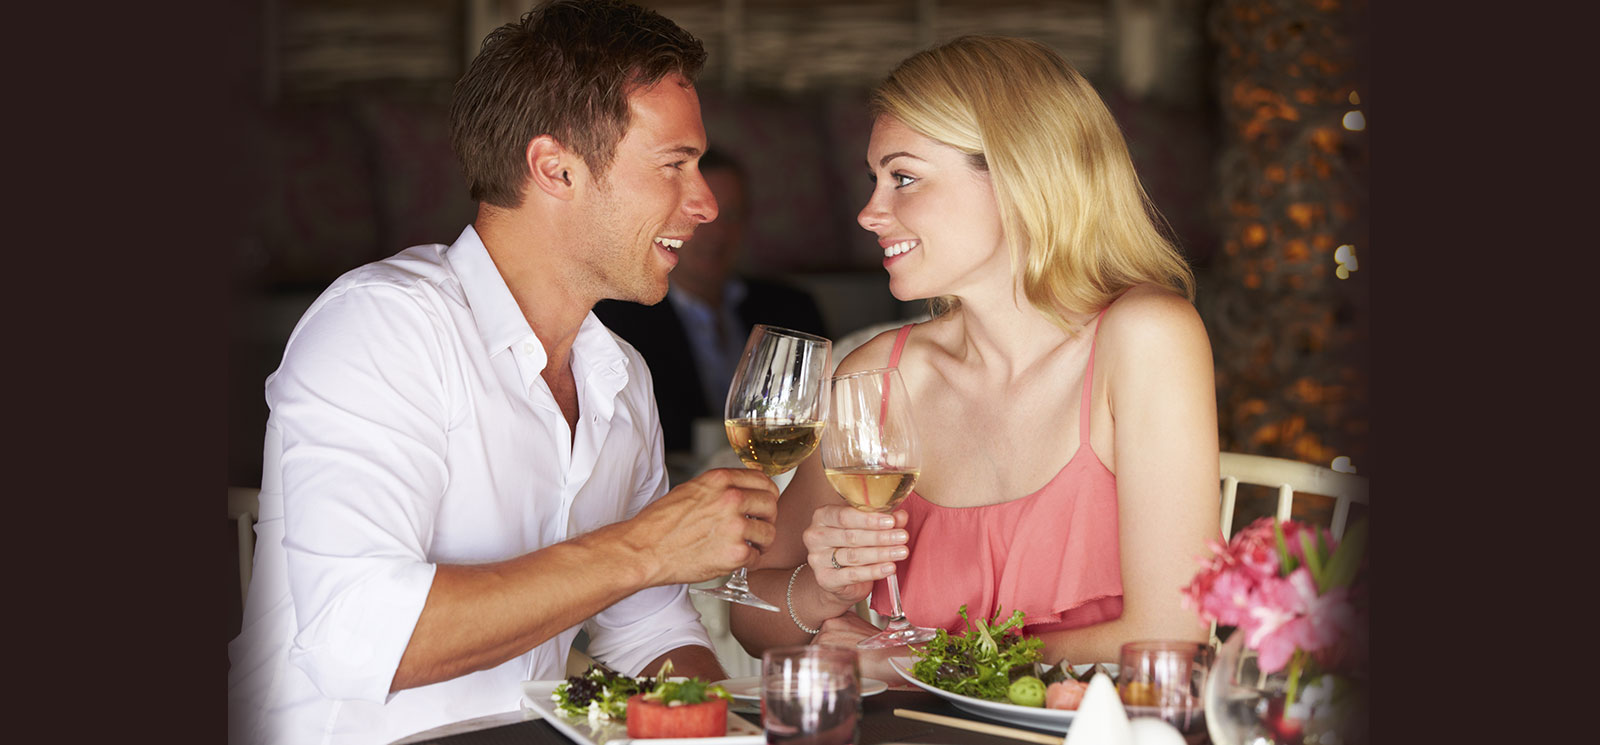 Dining and Nightlife In Rehoboth Beach